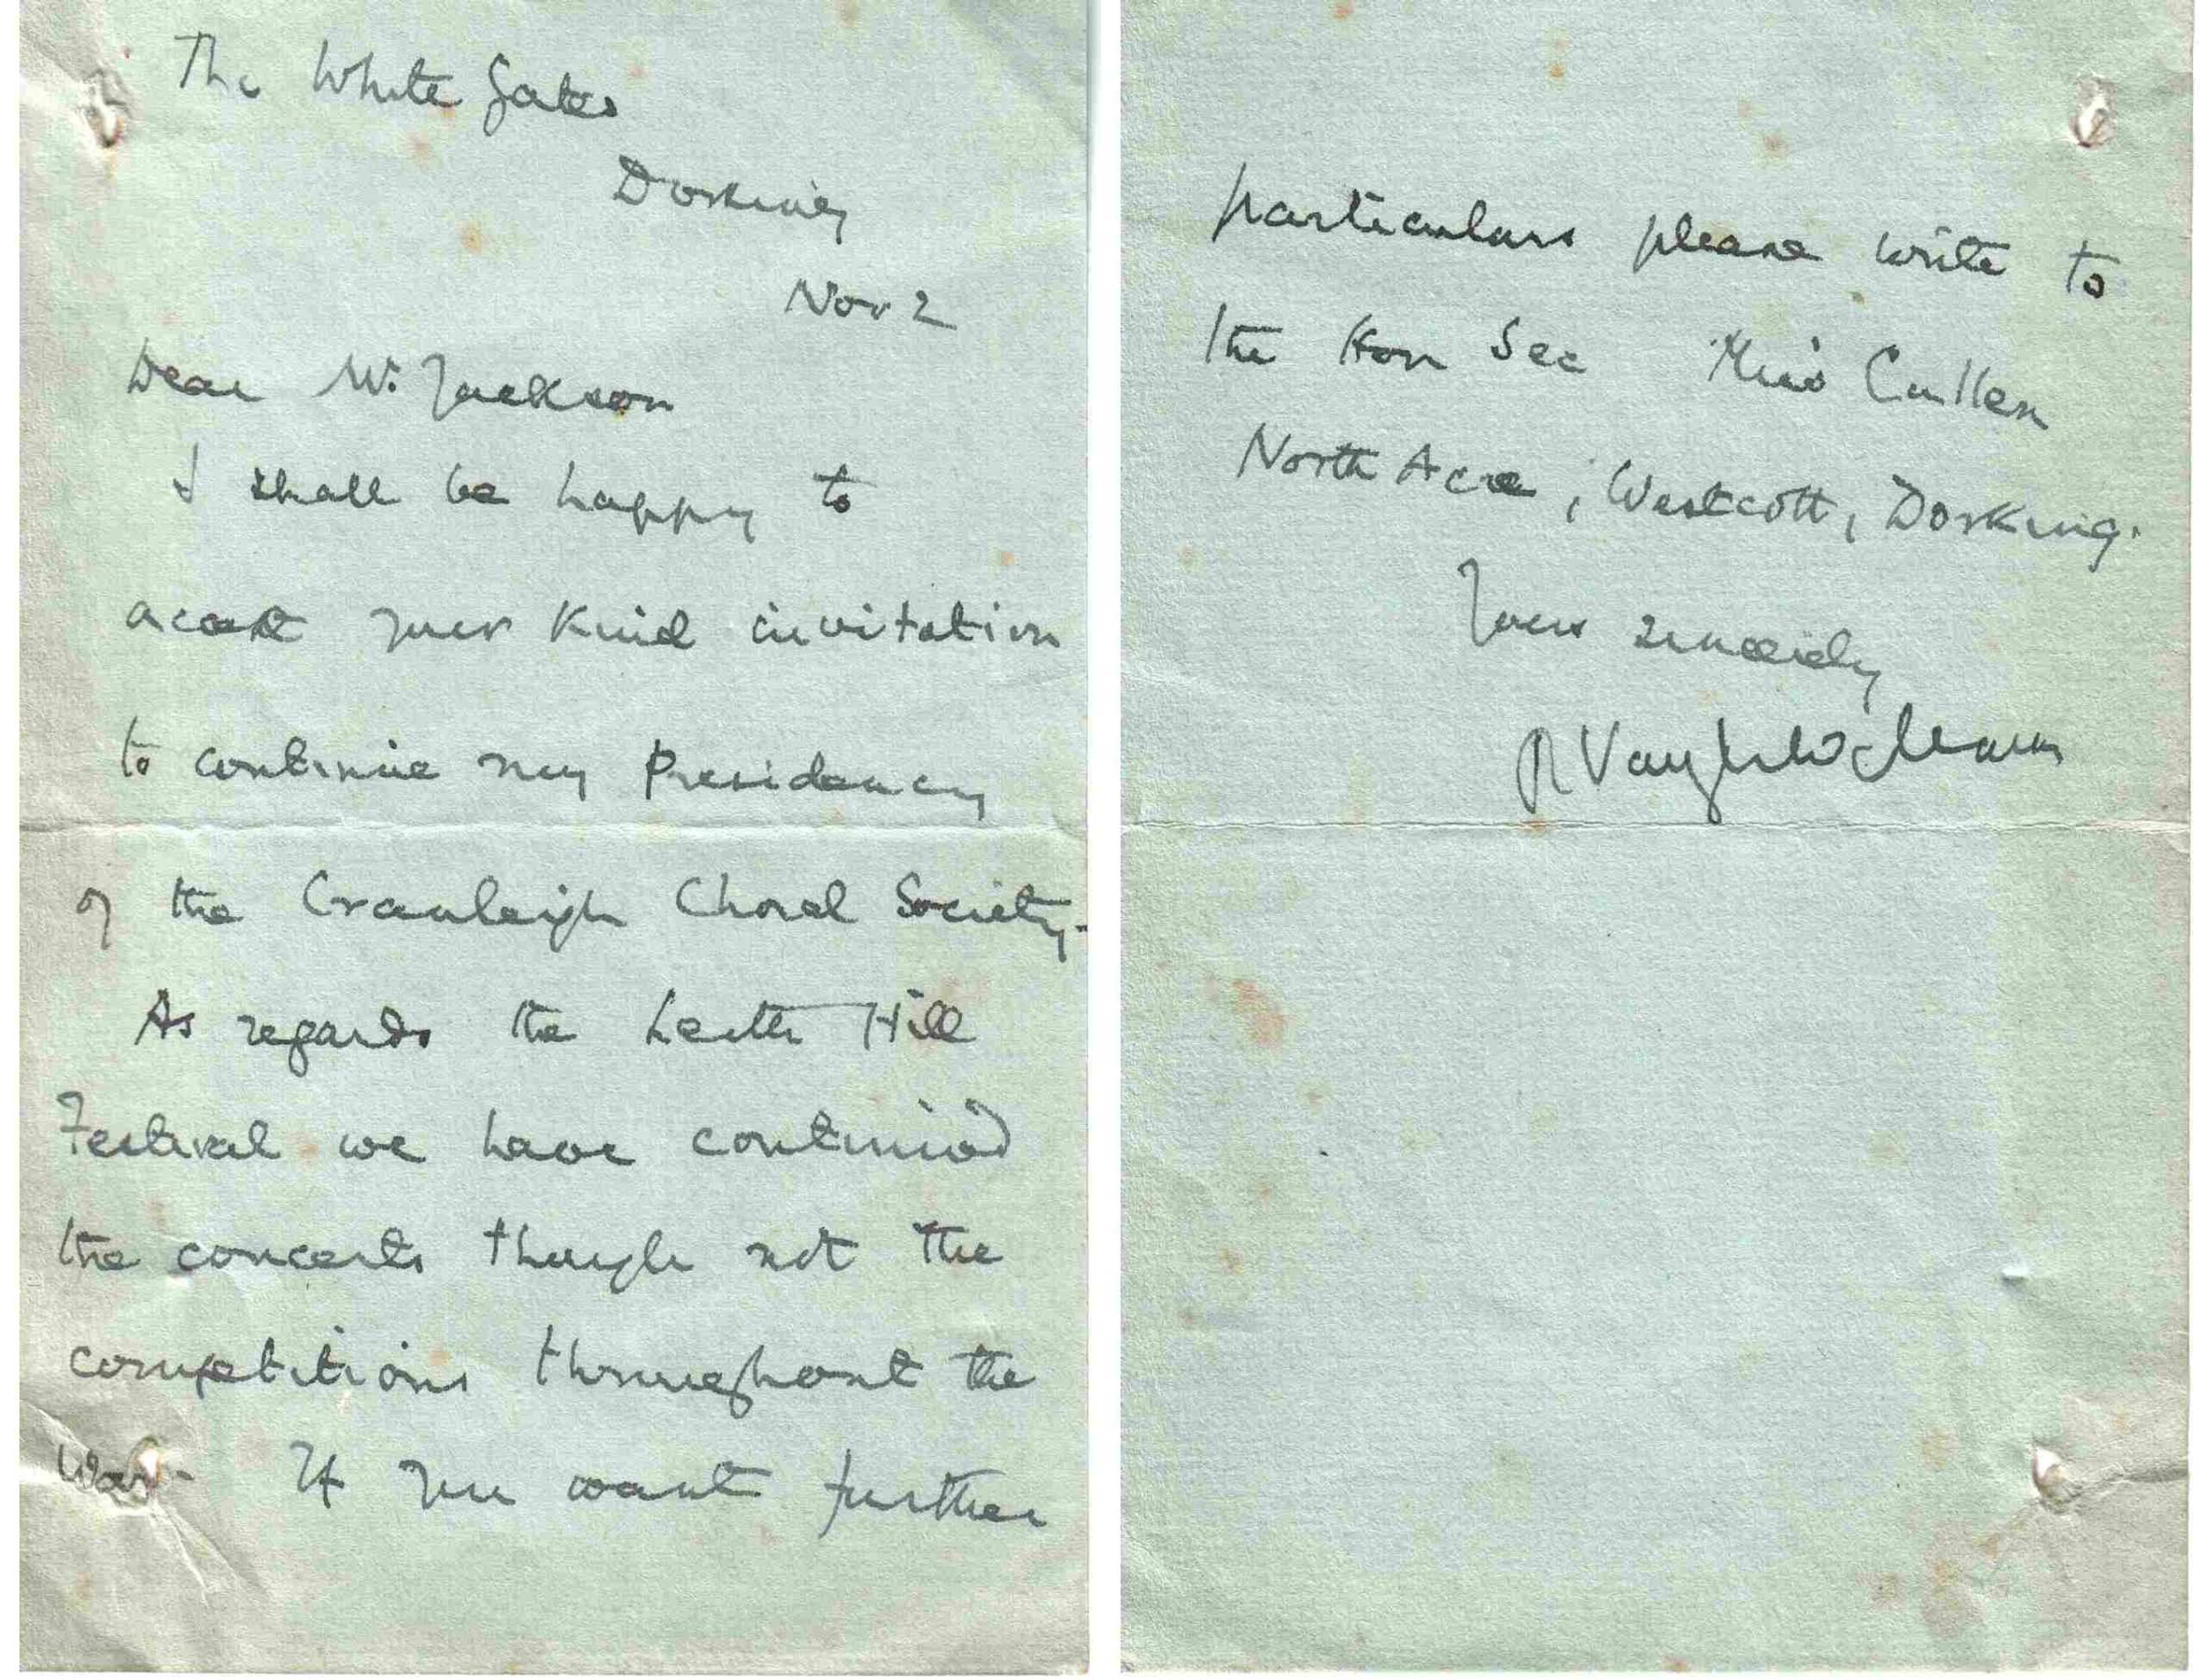 vaughan-williams letter